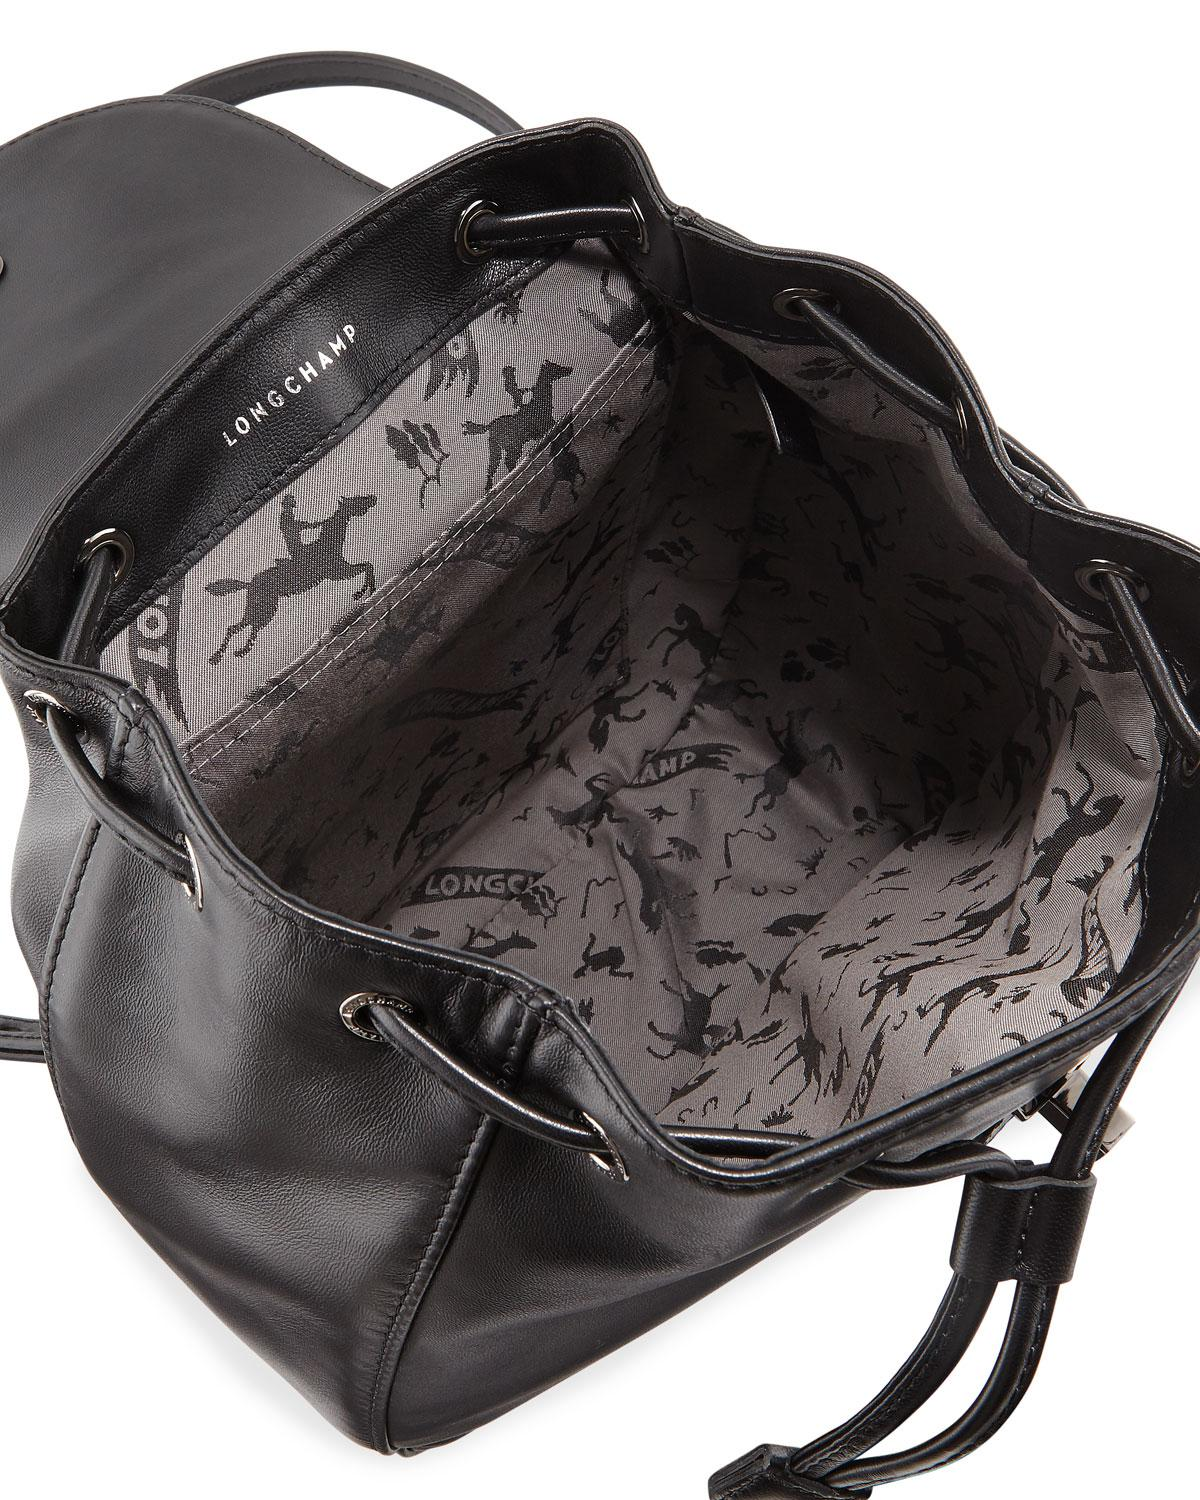 7097c0c70880 Lyst - Longchamp Cavalcade Leather Backpack in Black - Save 40%